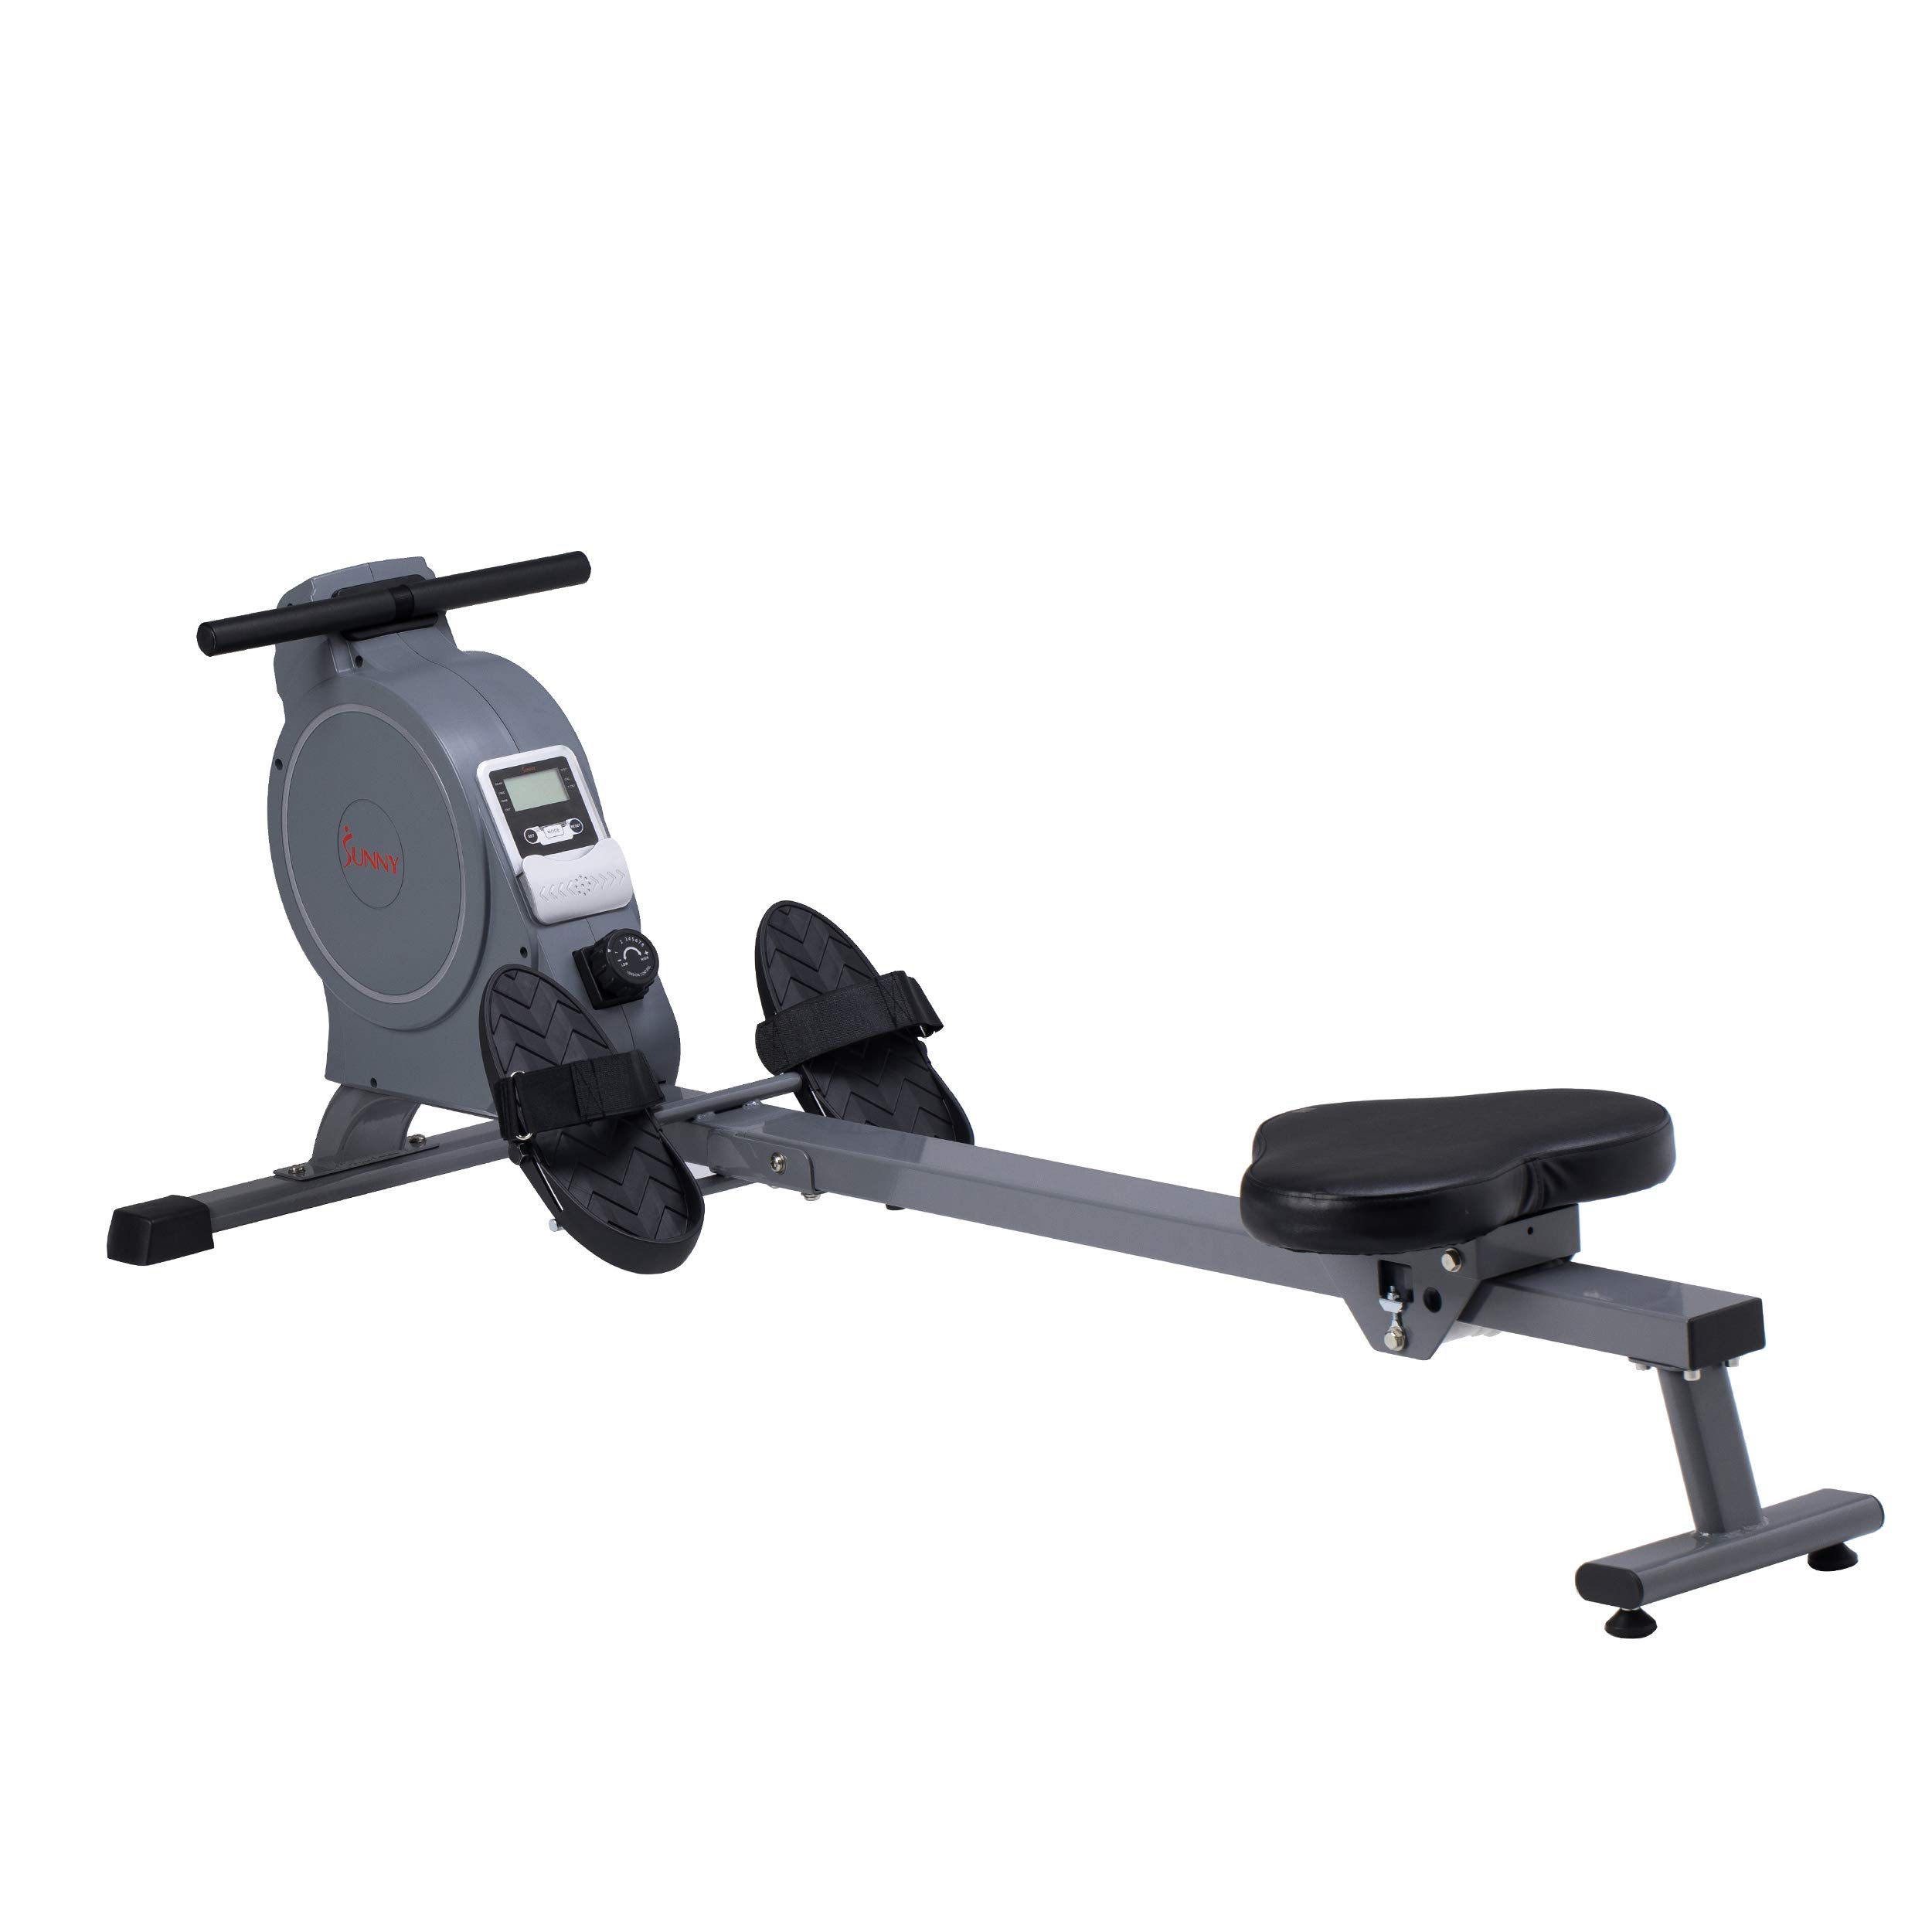 Sunny Health & Fitness Magnetic Rowing Machine Rower, 5.5lb Flywheel and LCD Monitor with Tablet Holder - SF-RW5885